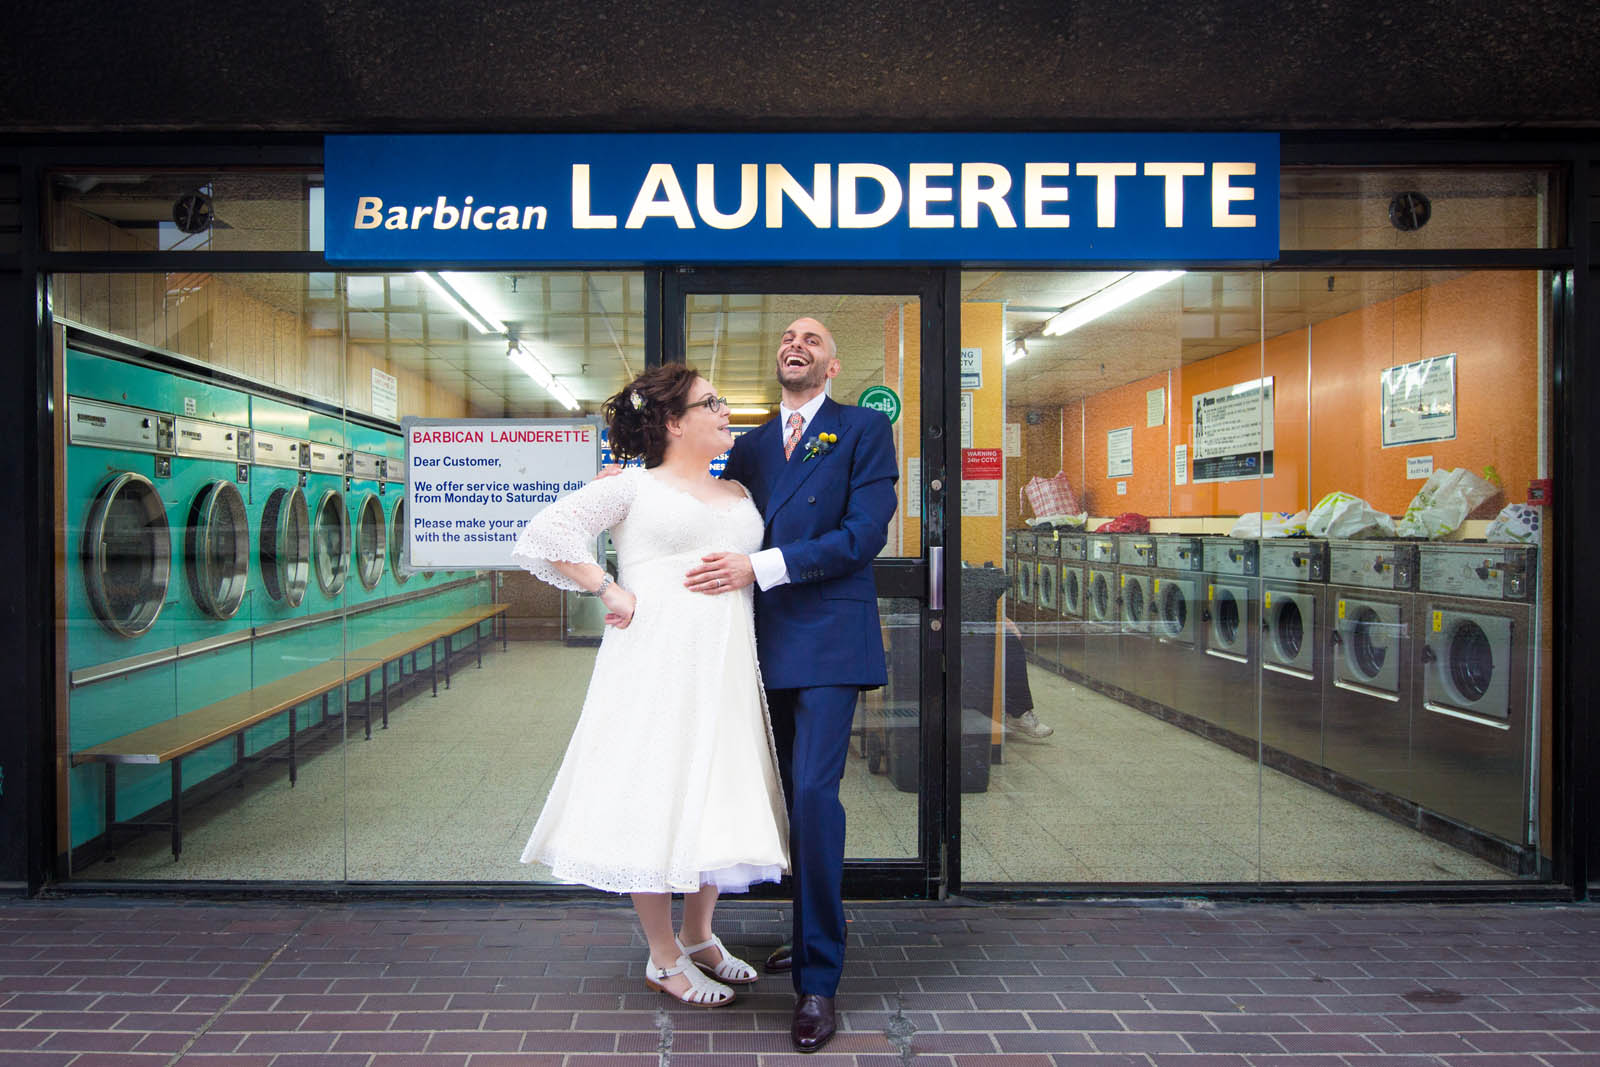 18 june launderette